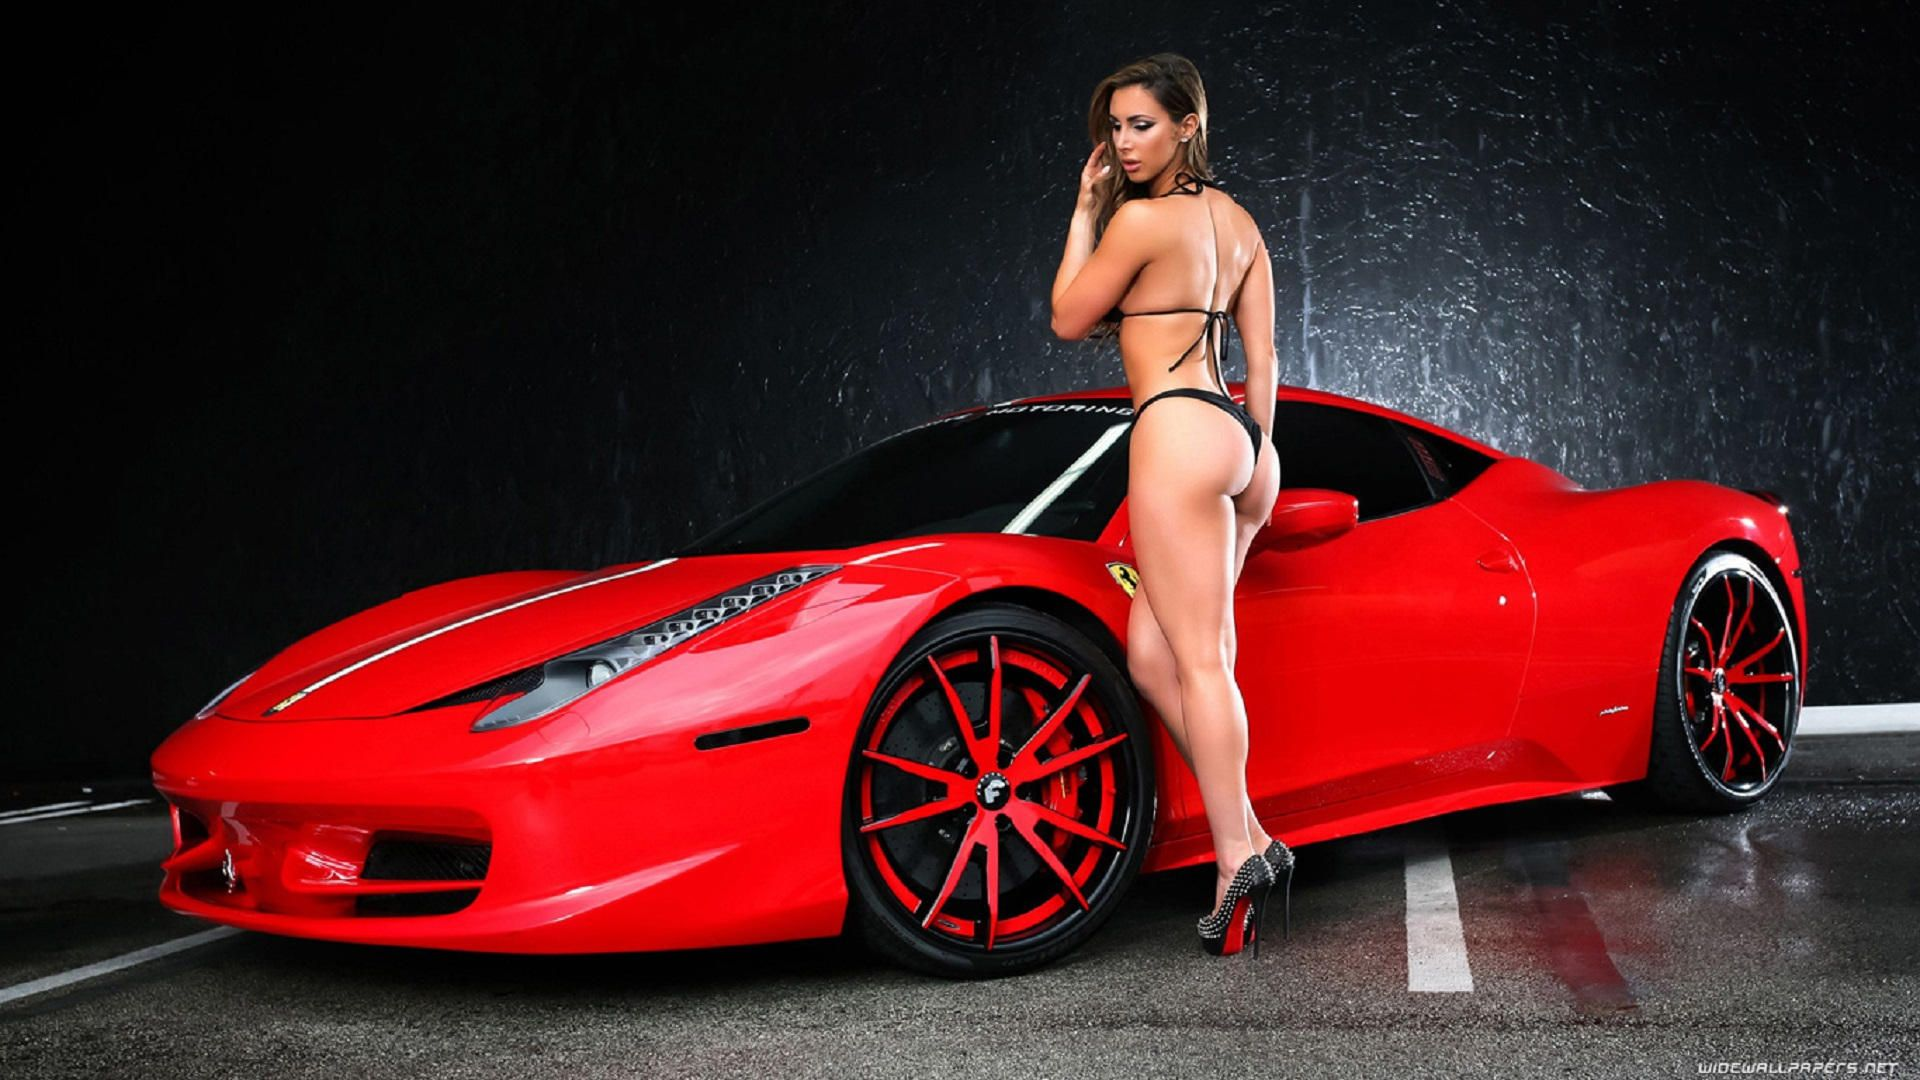 cool car ferrari and best girl hot cars - car wallpapers hd high